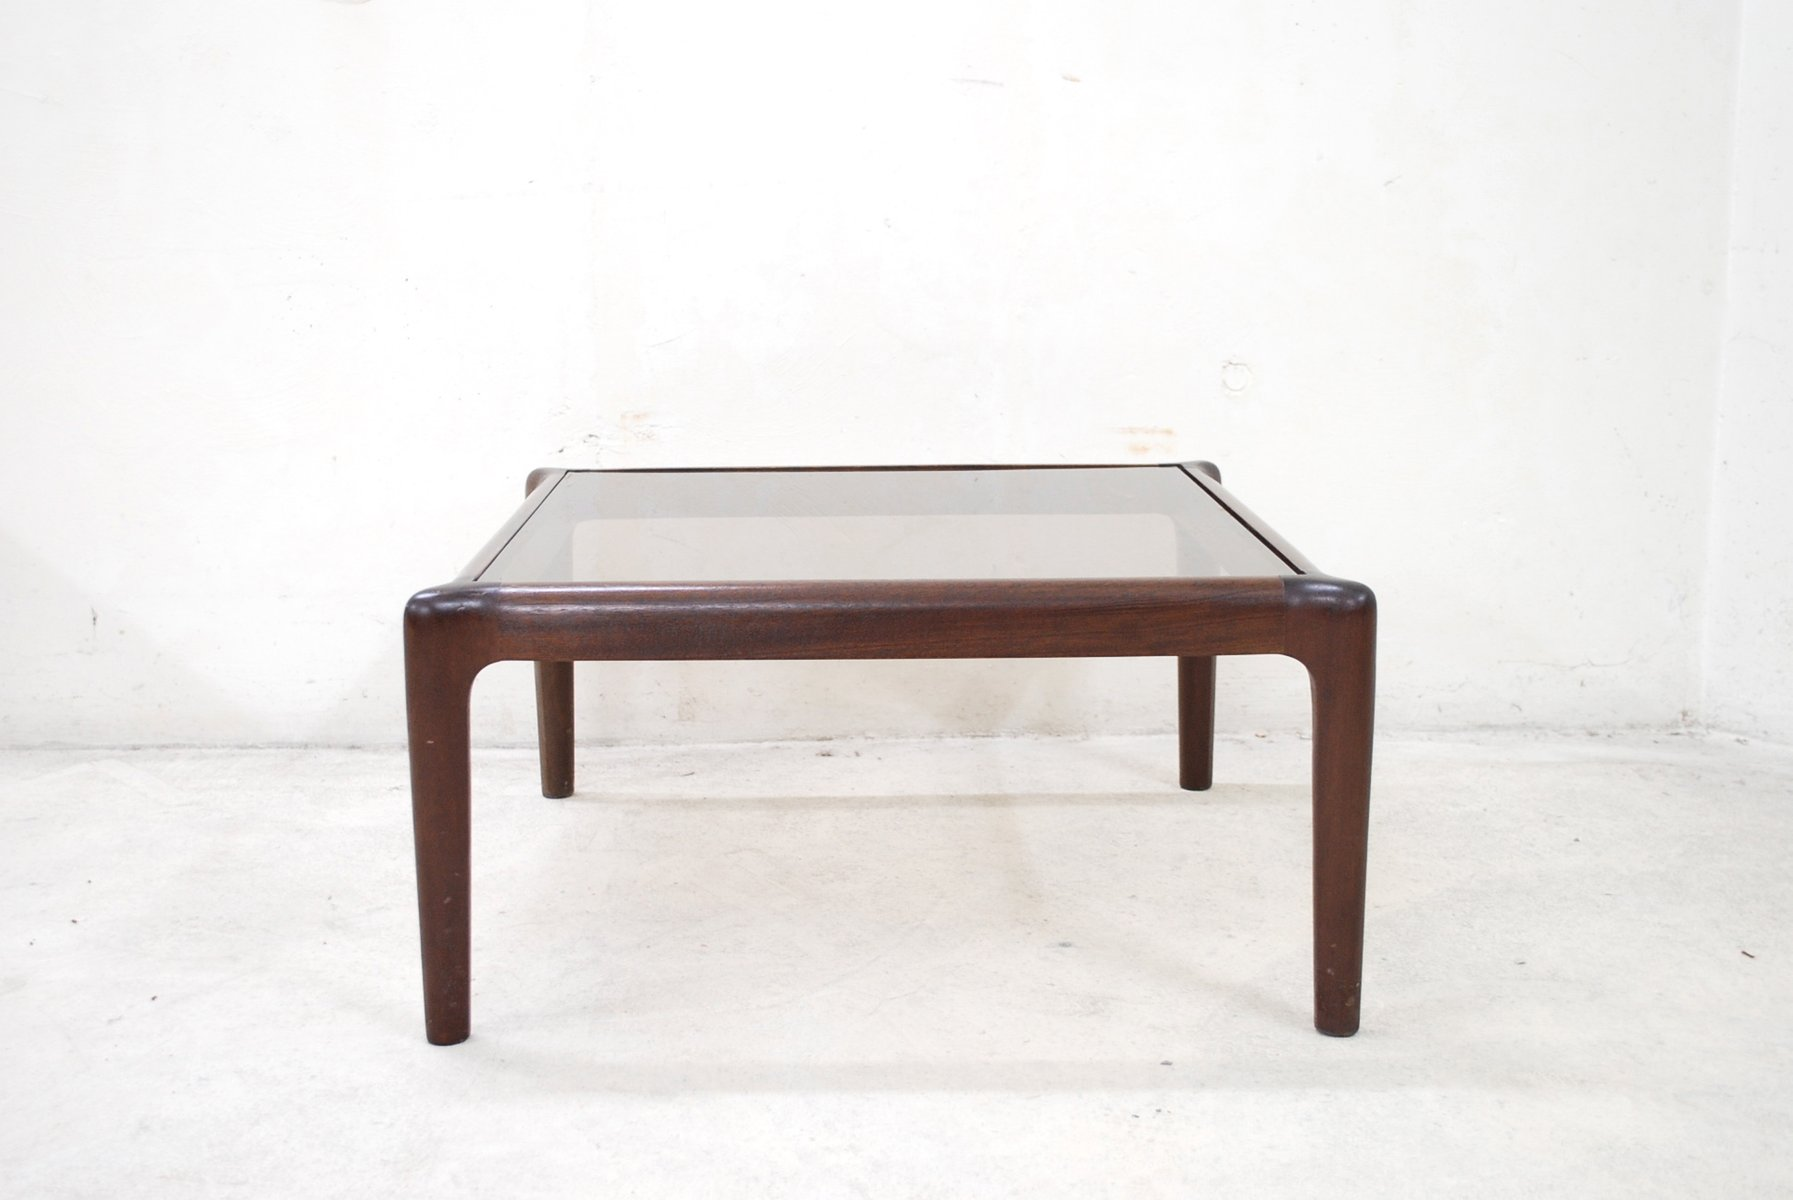 Vintage Low Mahogony Smoked Glass Coffee Table For Sale At Pamono